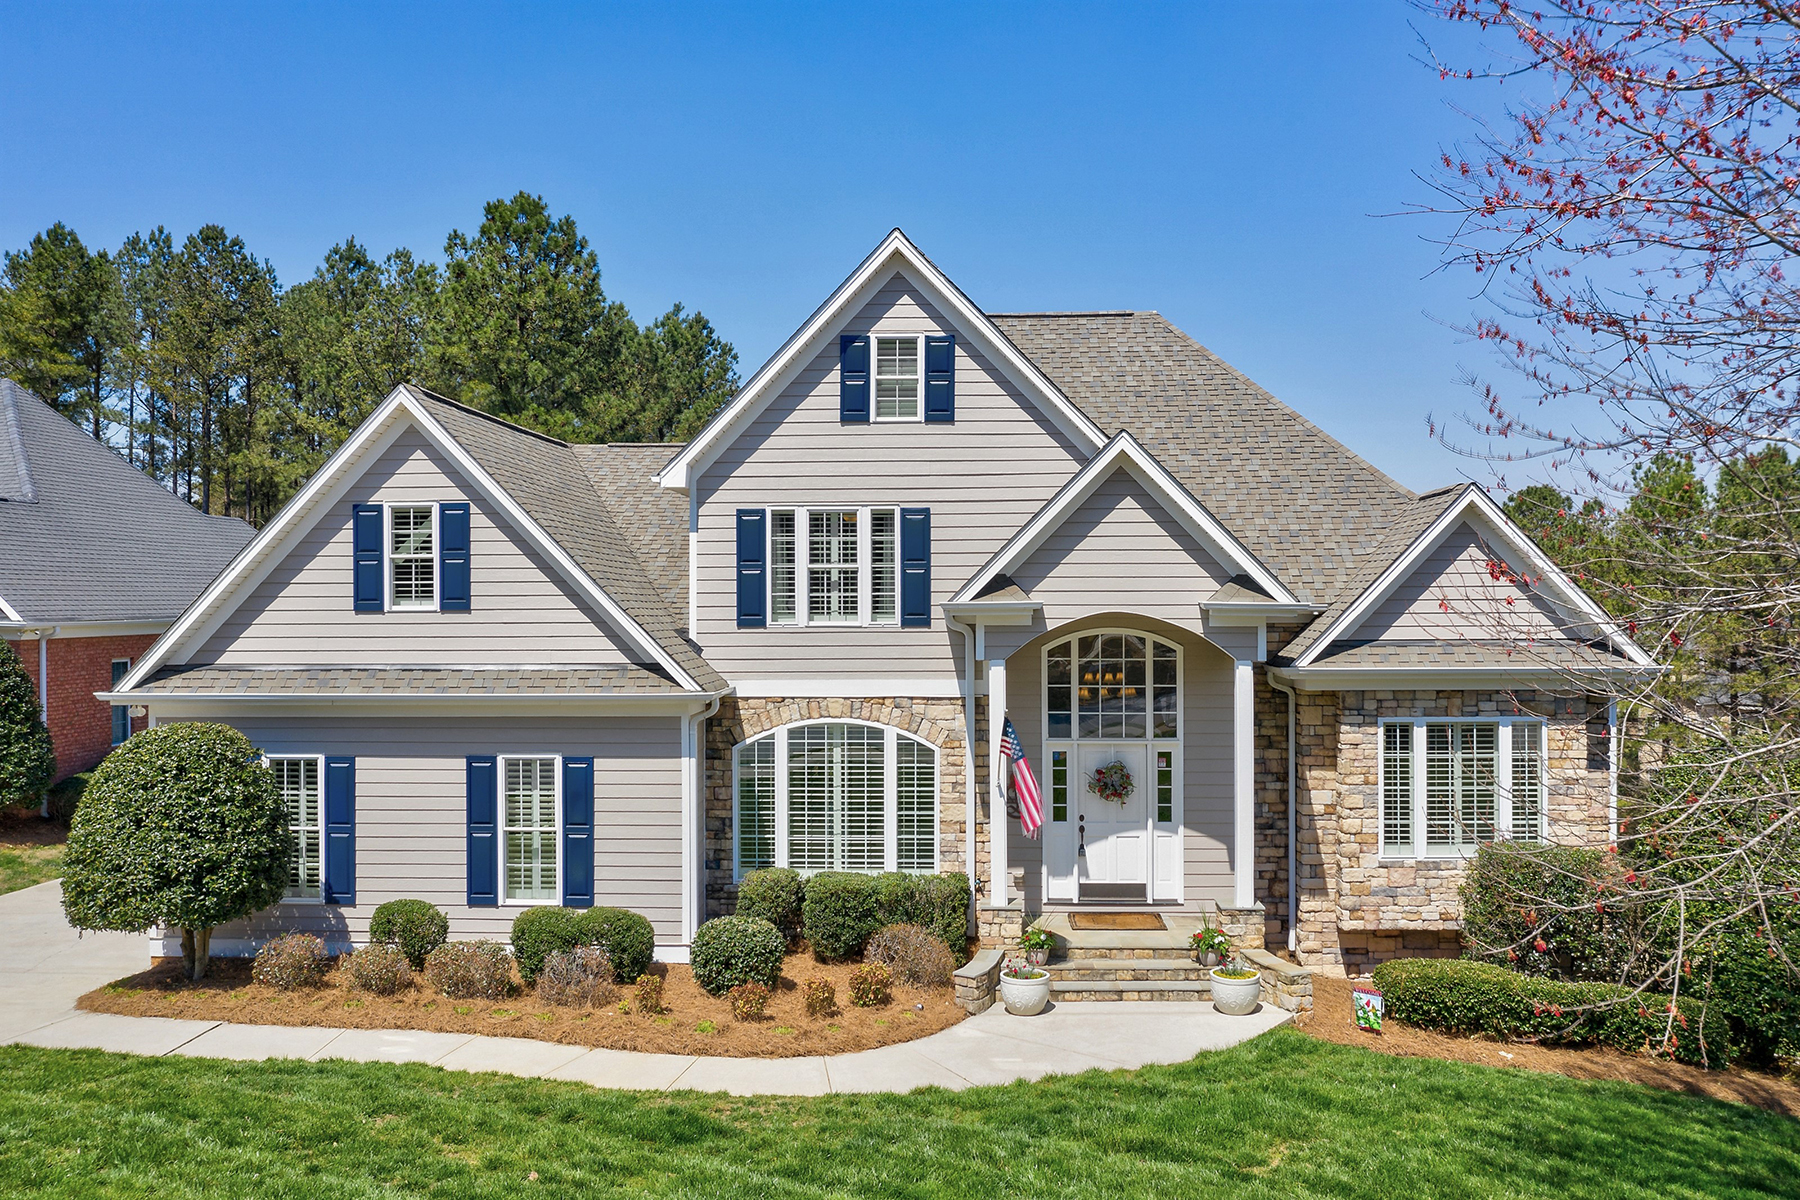 Single Family Home for Active at 1316 Verdict Ridge Dr Denver, North Carolina 28037 United States